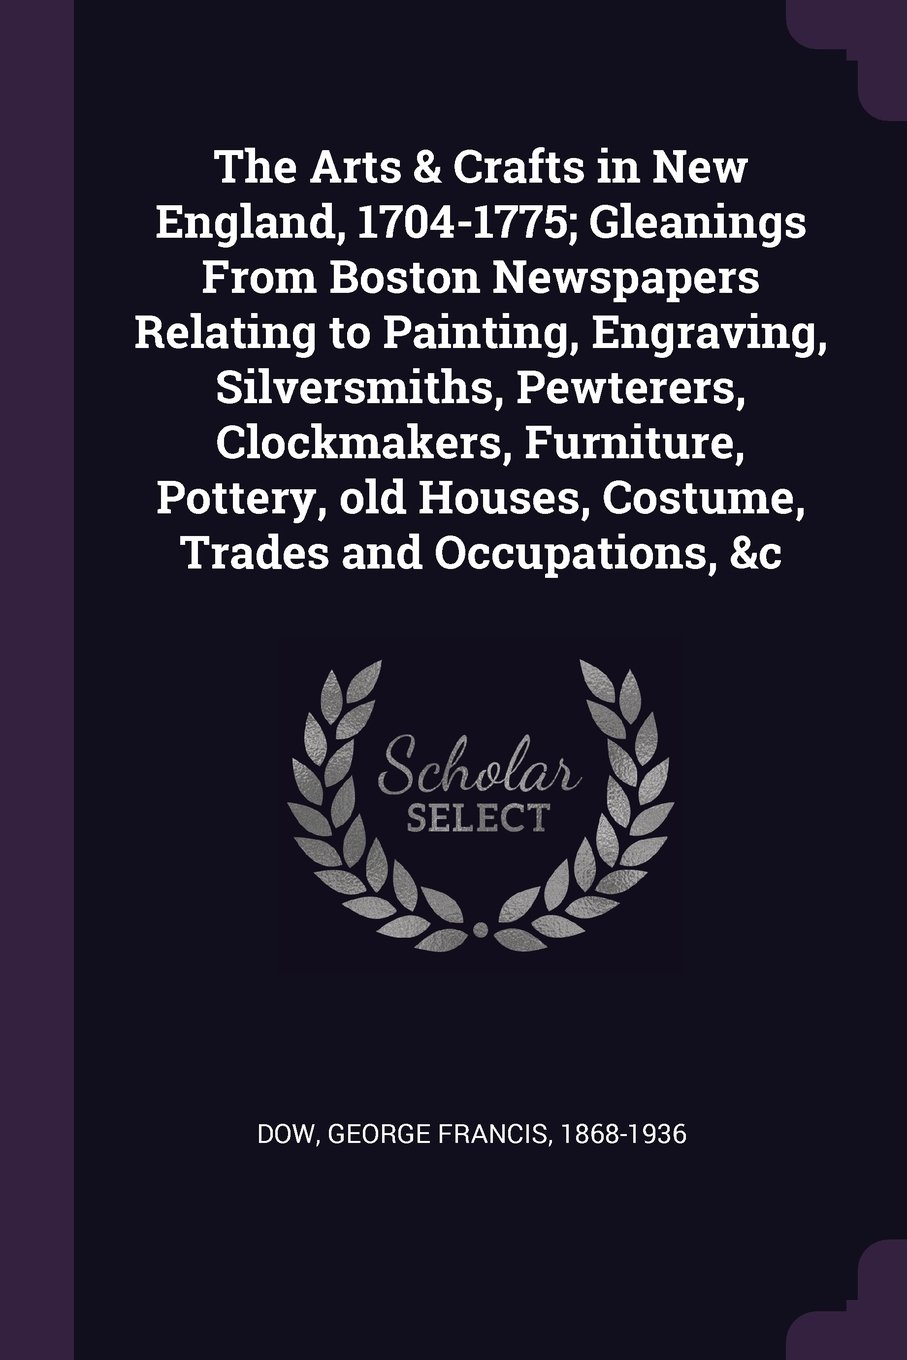 The Arts & Crafts in New England, 1704-1775; Gleanings from Boston Newspapers Relating to Painting, Engraving, Silversmiths, Pewterers, Clockmakers. Houses, Costume, Trades and Occupations, c ebook